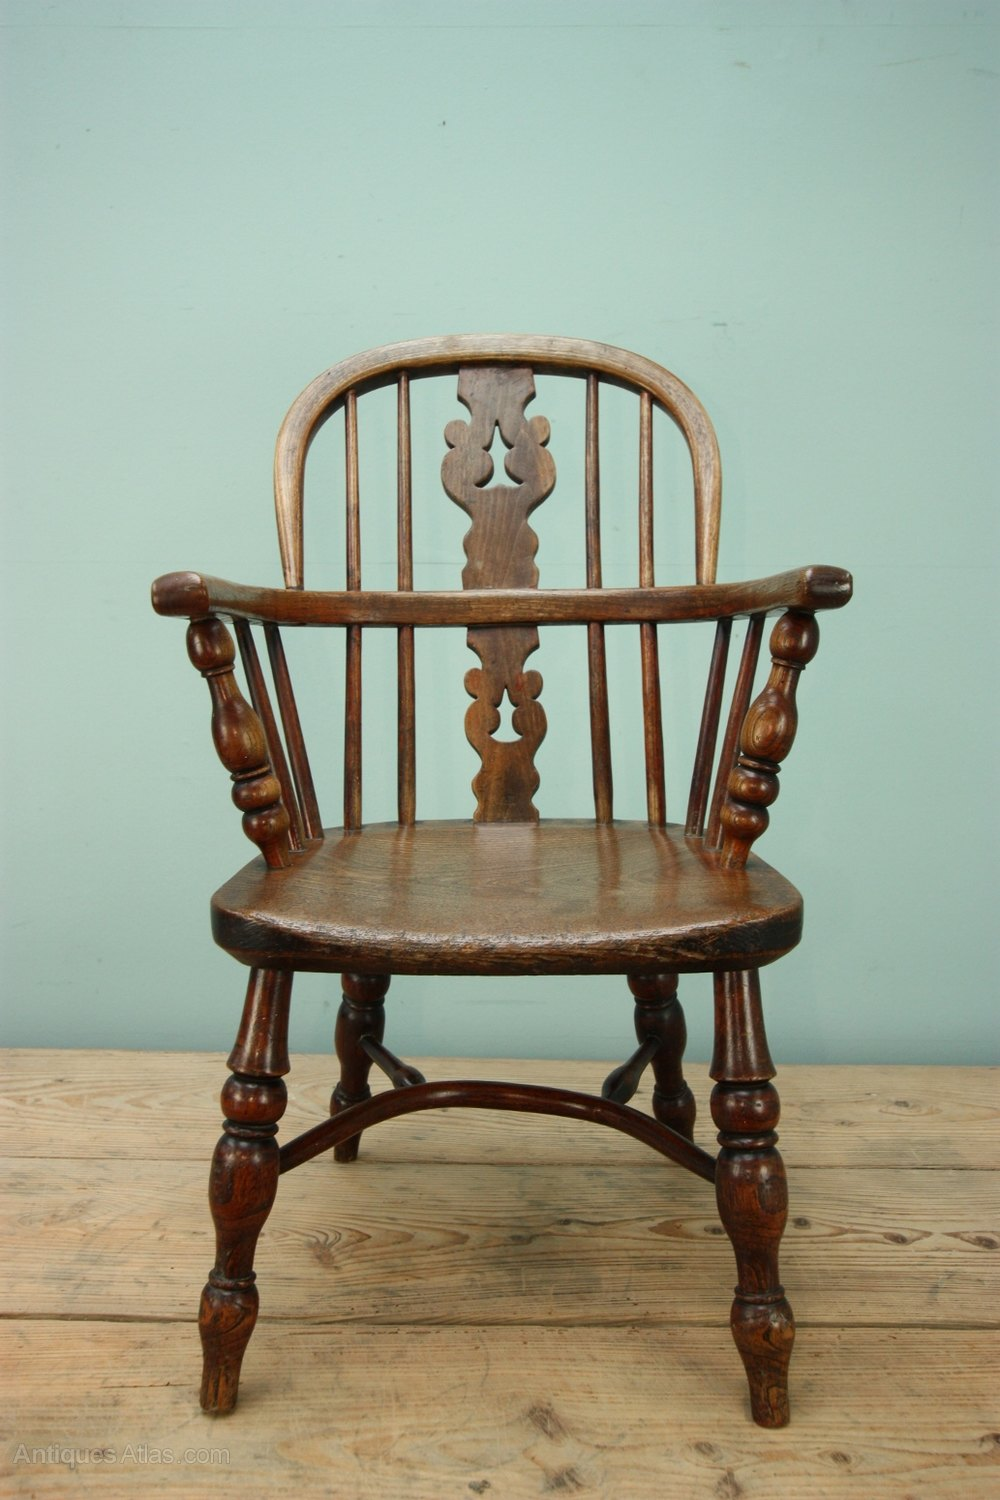 Antique Childs Chairs ... - Childs Antique Windsor Chair. - Antiques Atlas